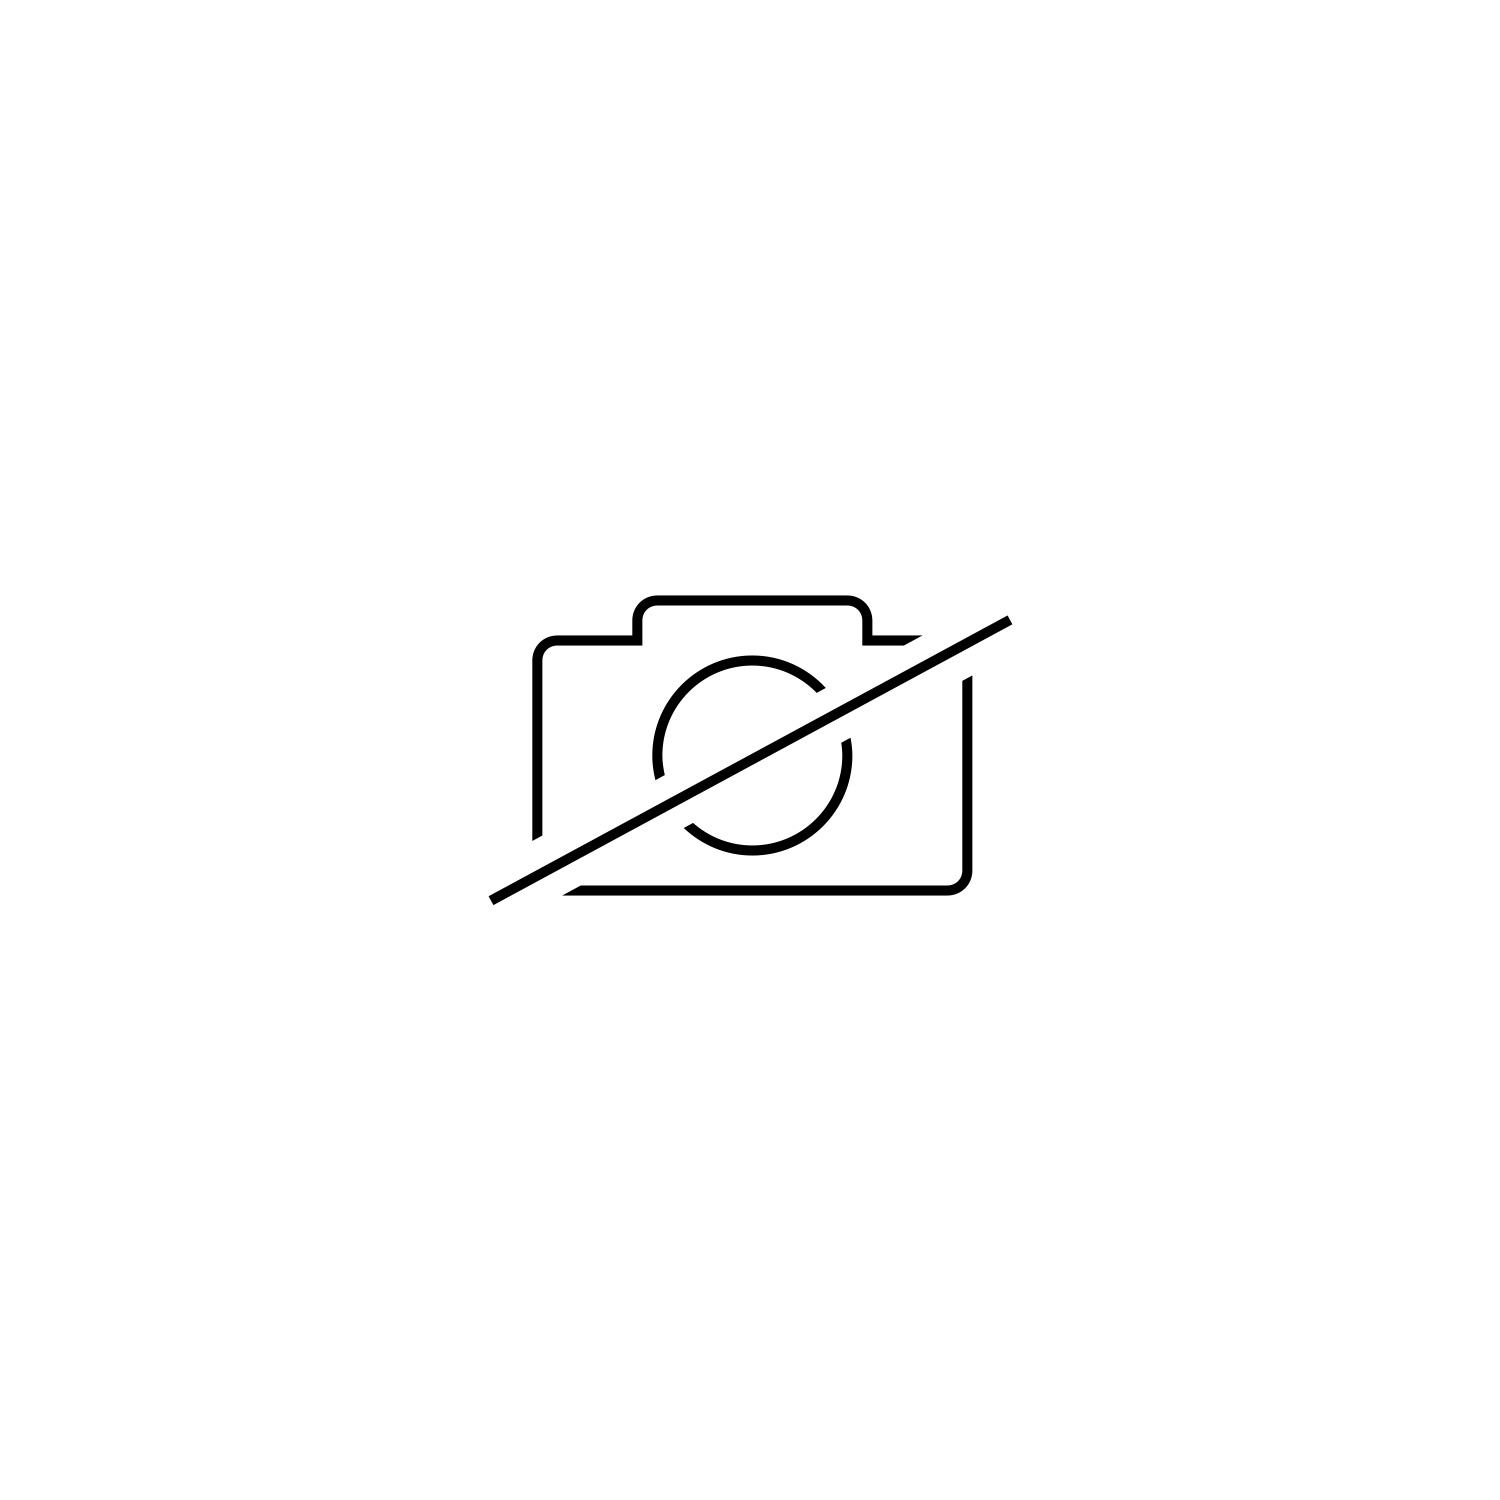 quattro Hoodie, Womens, Light grey, M